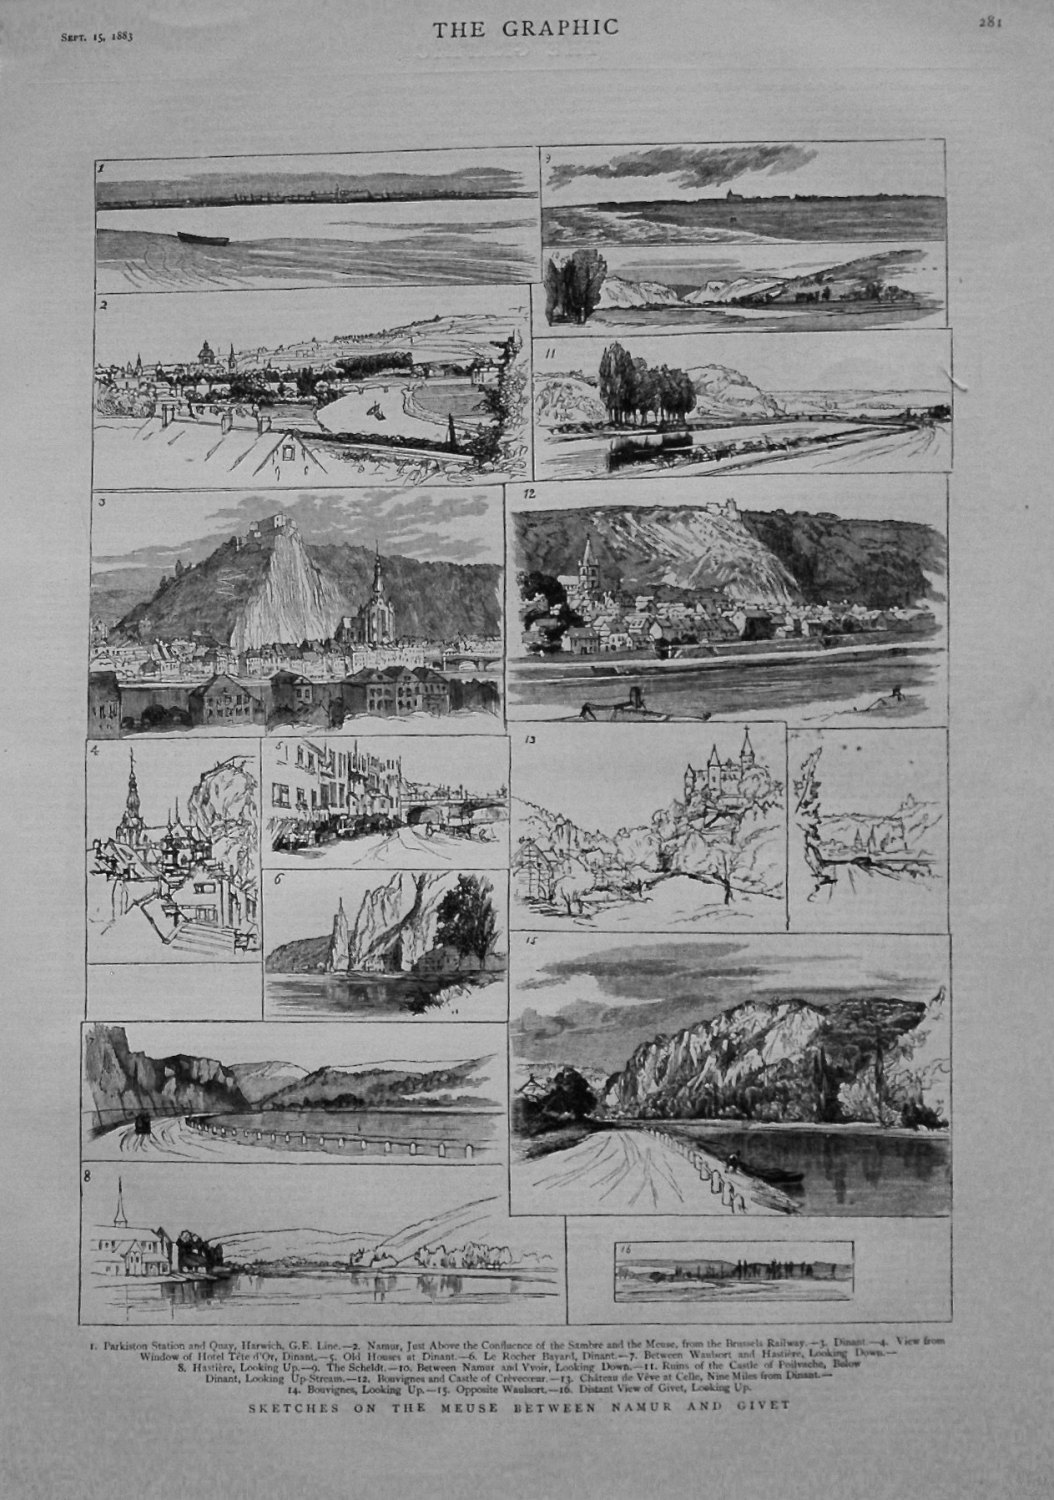 Sketches on the Meuse between Namur and Givet. 1883